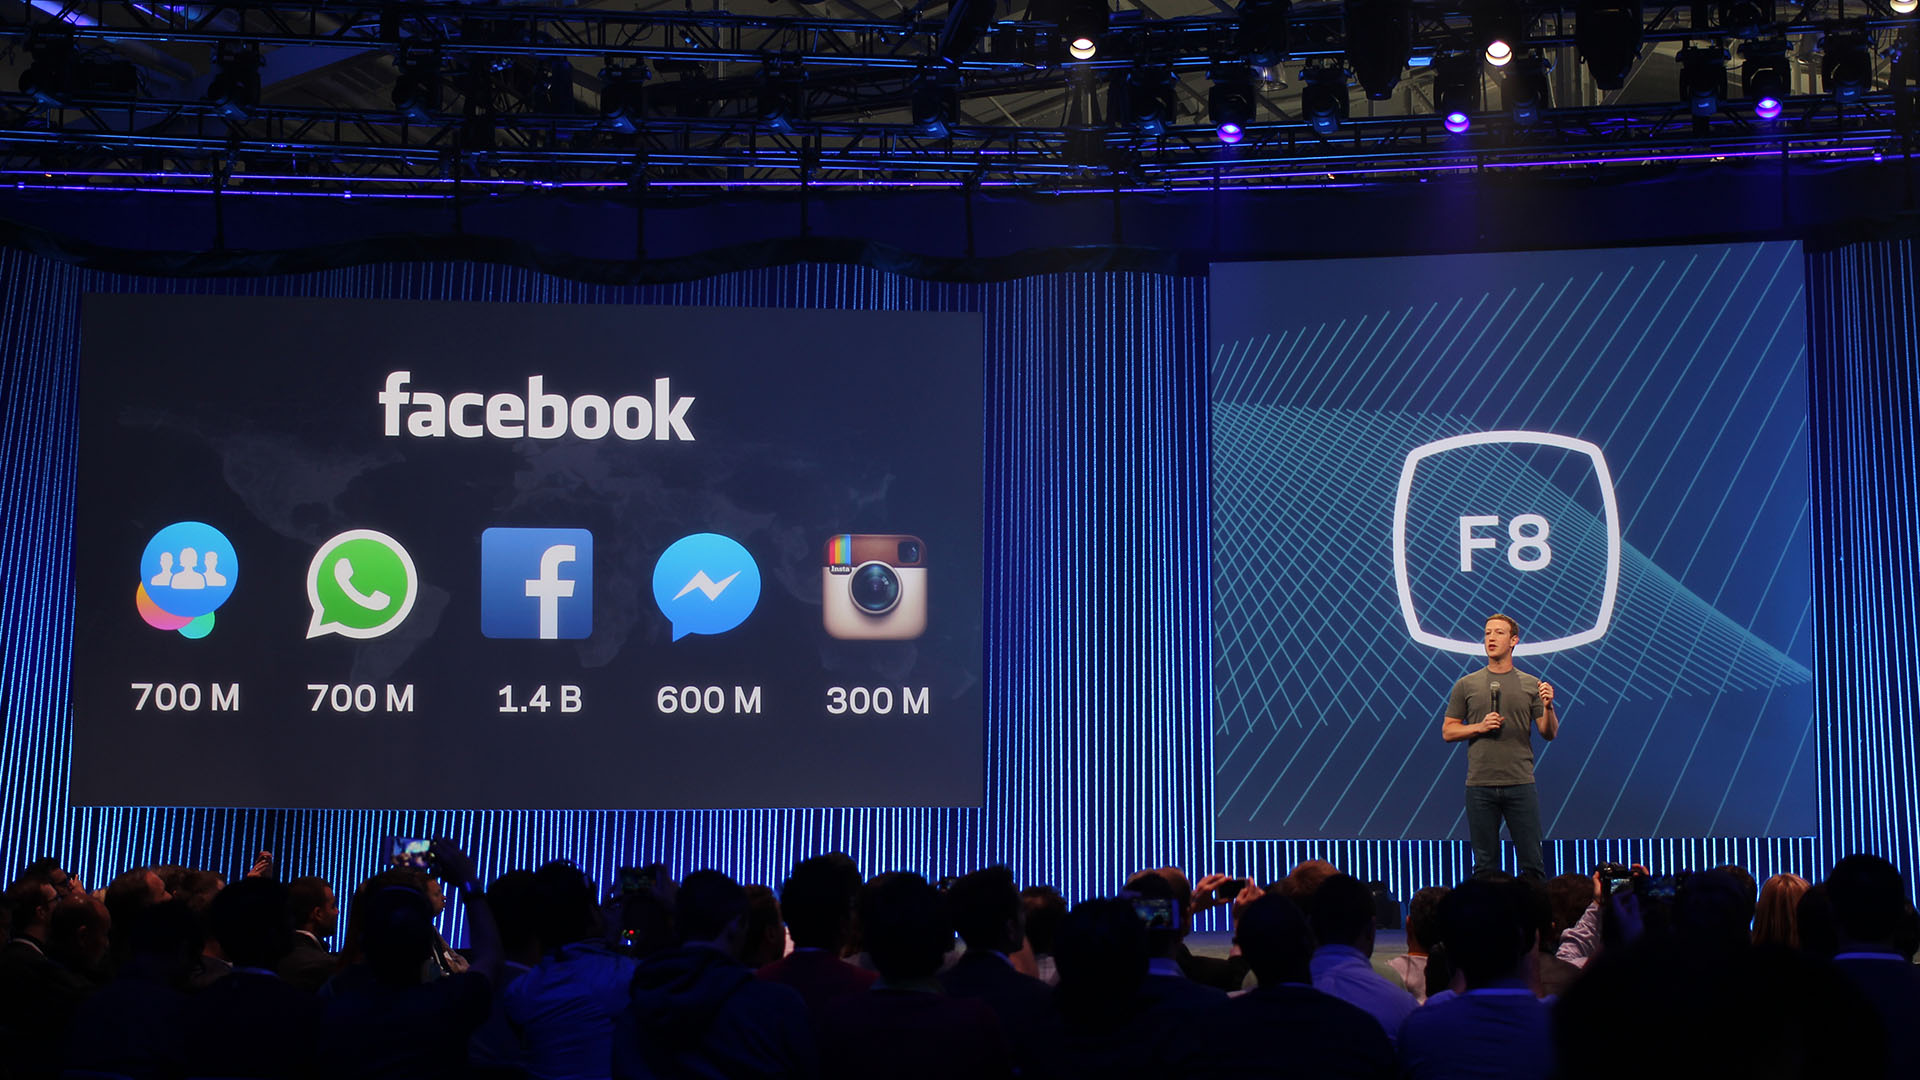 KPI6 ha superato la review tecnica di Facebook